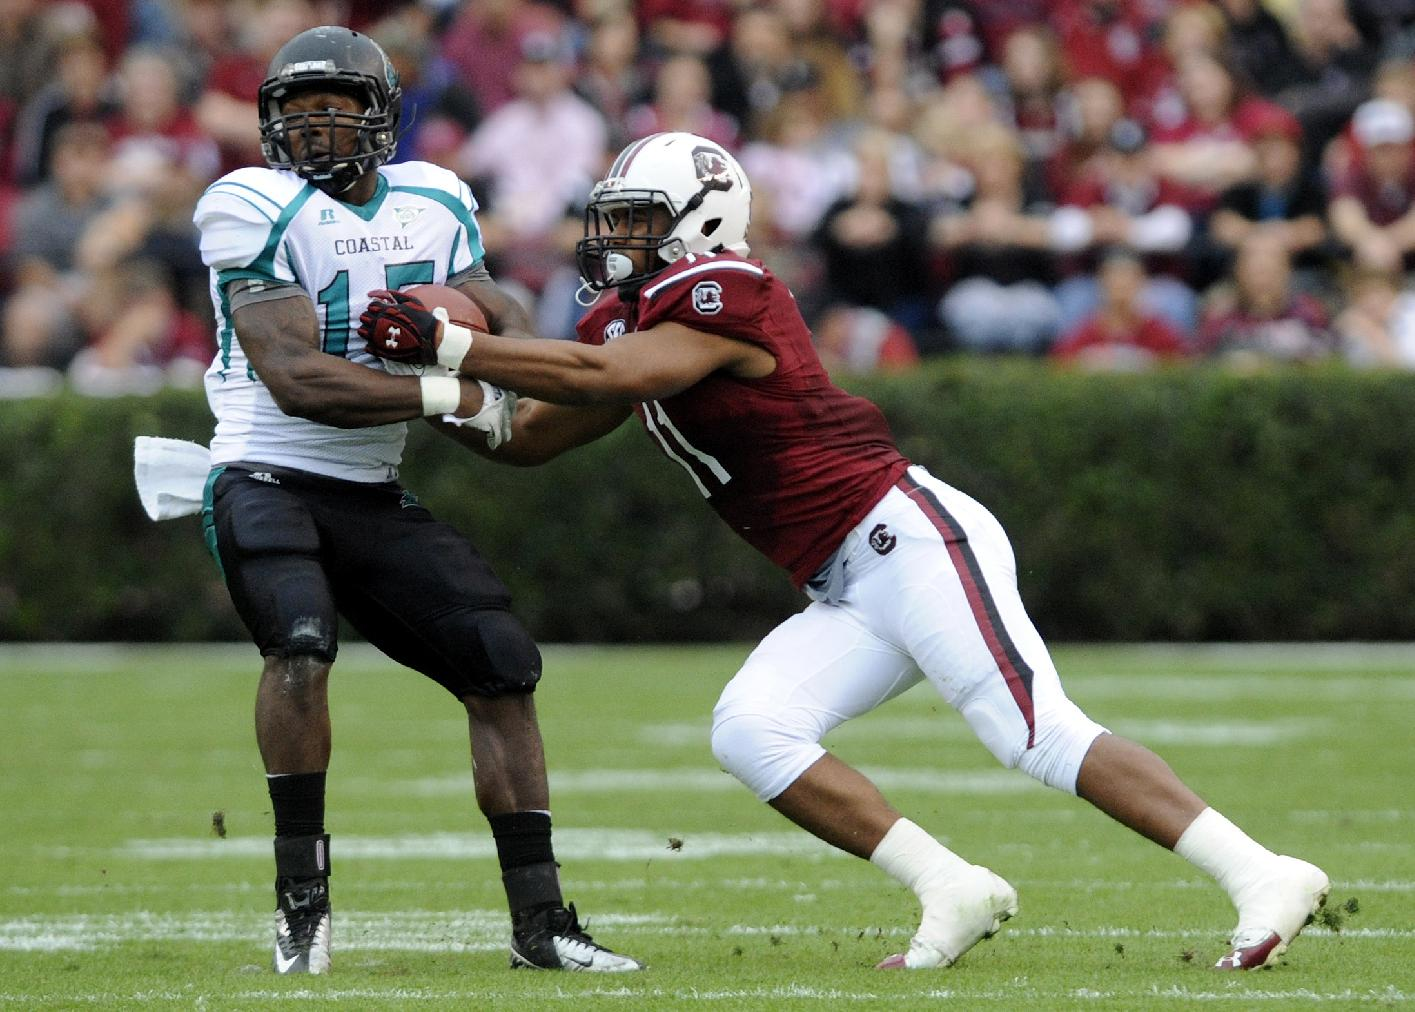 Coastal Carolina running back Lorenzo Taliaferro (15) catches a pass as South Carolina linebacker T.J. Holloman (11) defends during the first half of an NCAA college football game, Saturday, Nov. 23, 2013, in Columbia, S.C